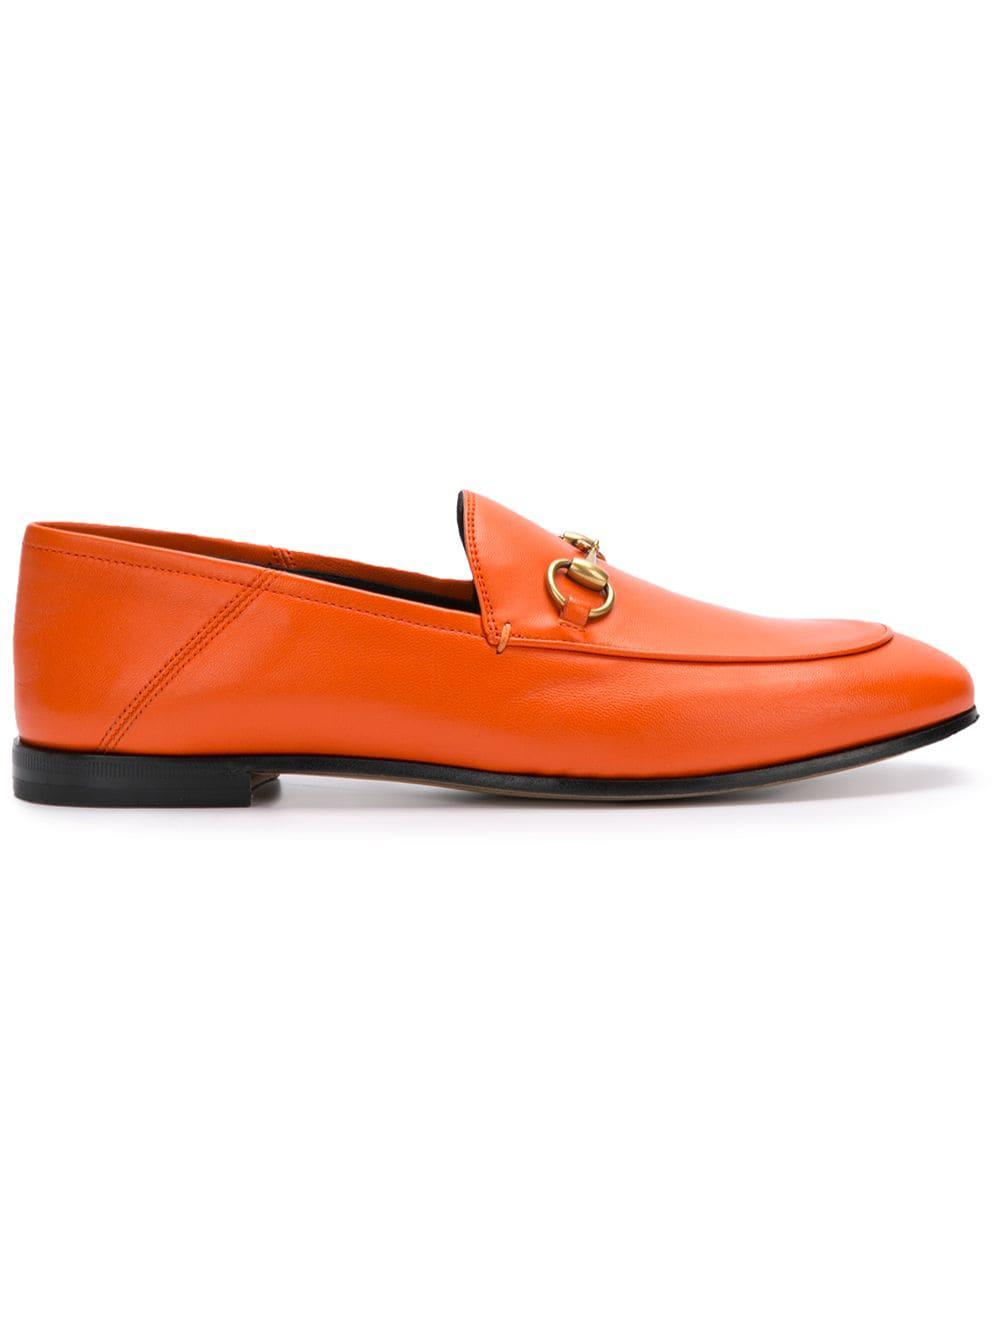 ff0573ab6190 Gucci Horsebit Loafers in Orange - Lyst